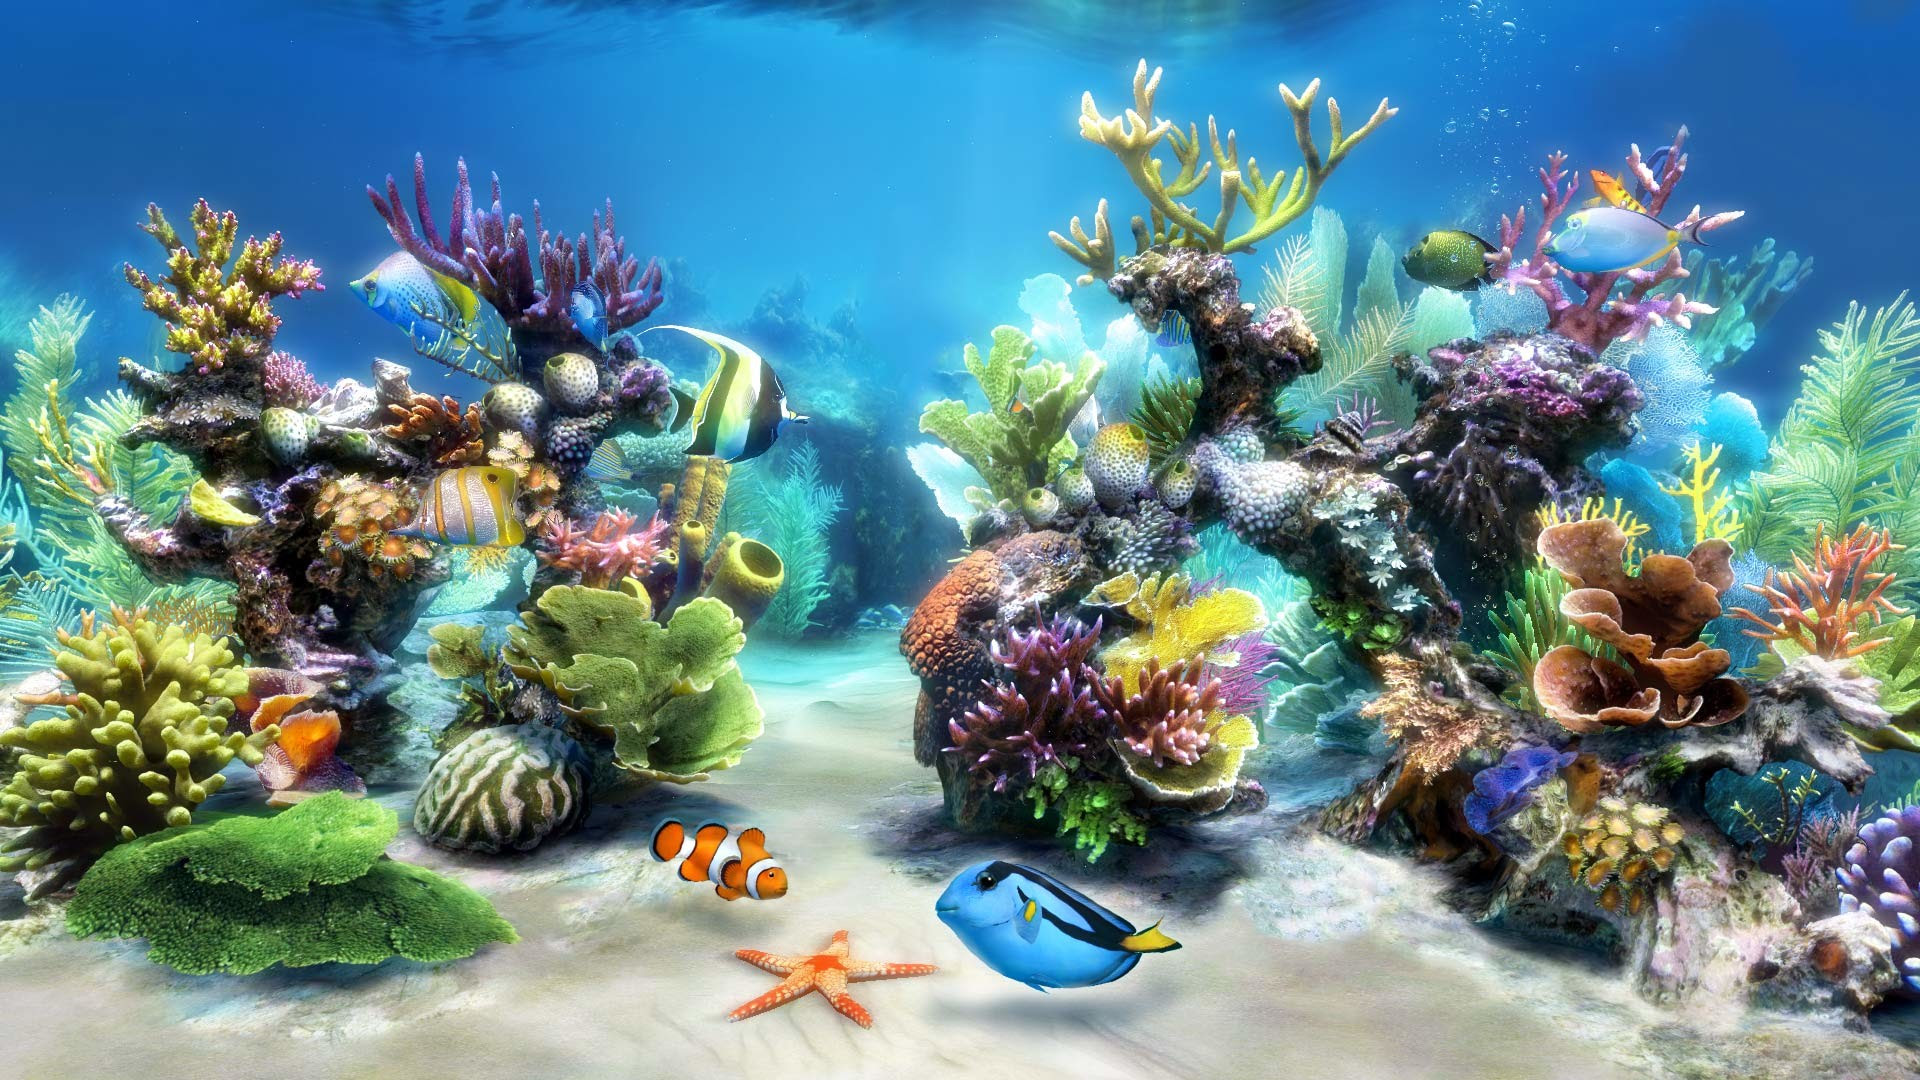 Coral Reef Live Wallpaper (59+ images)